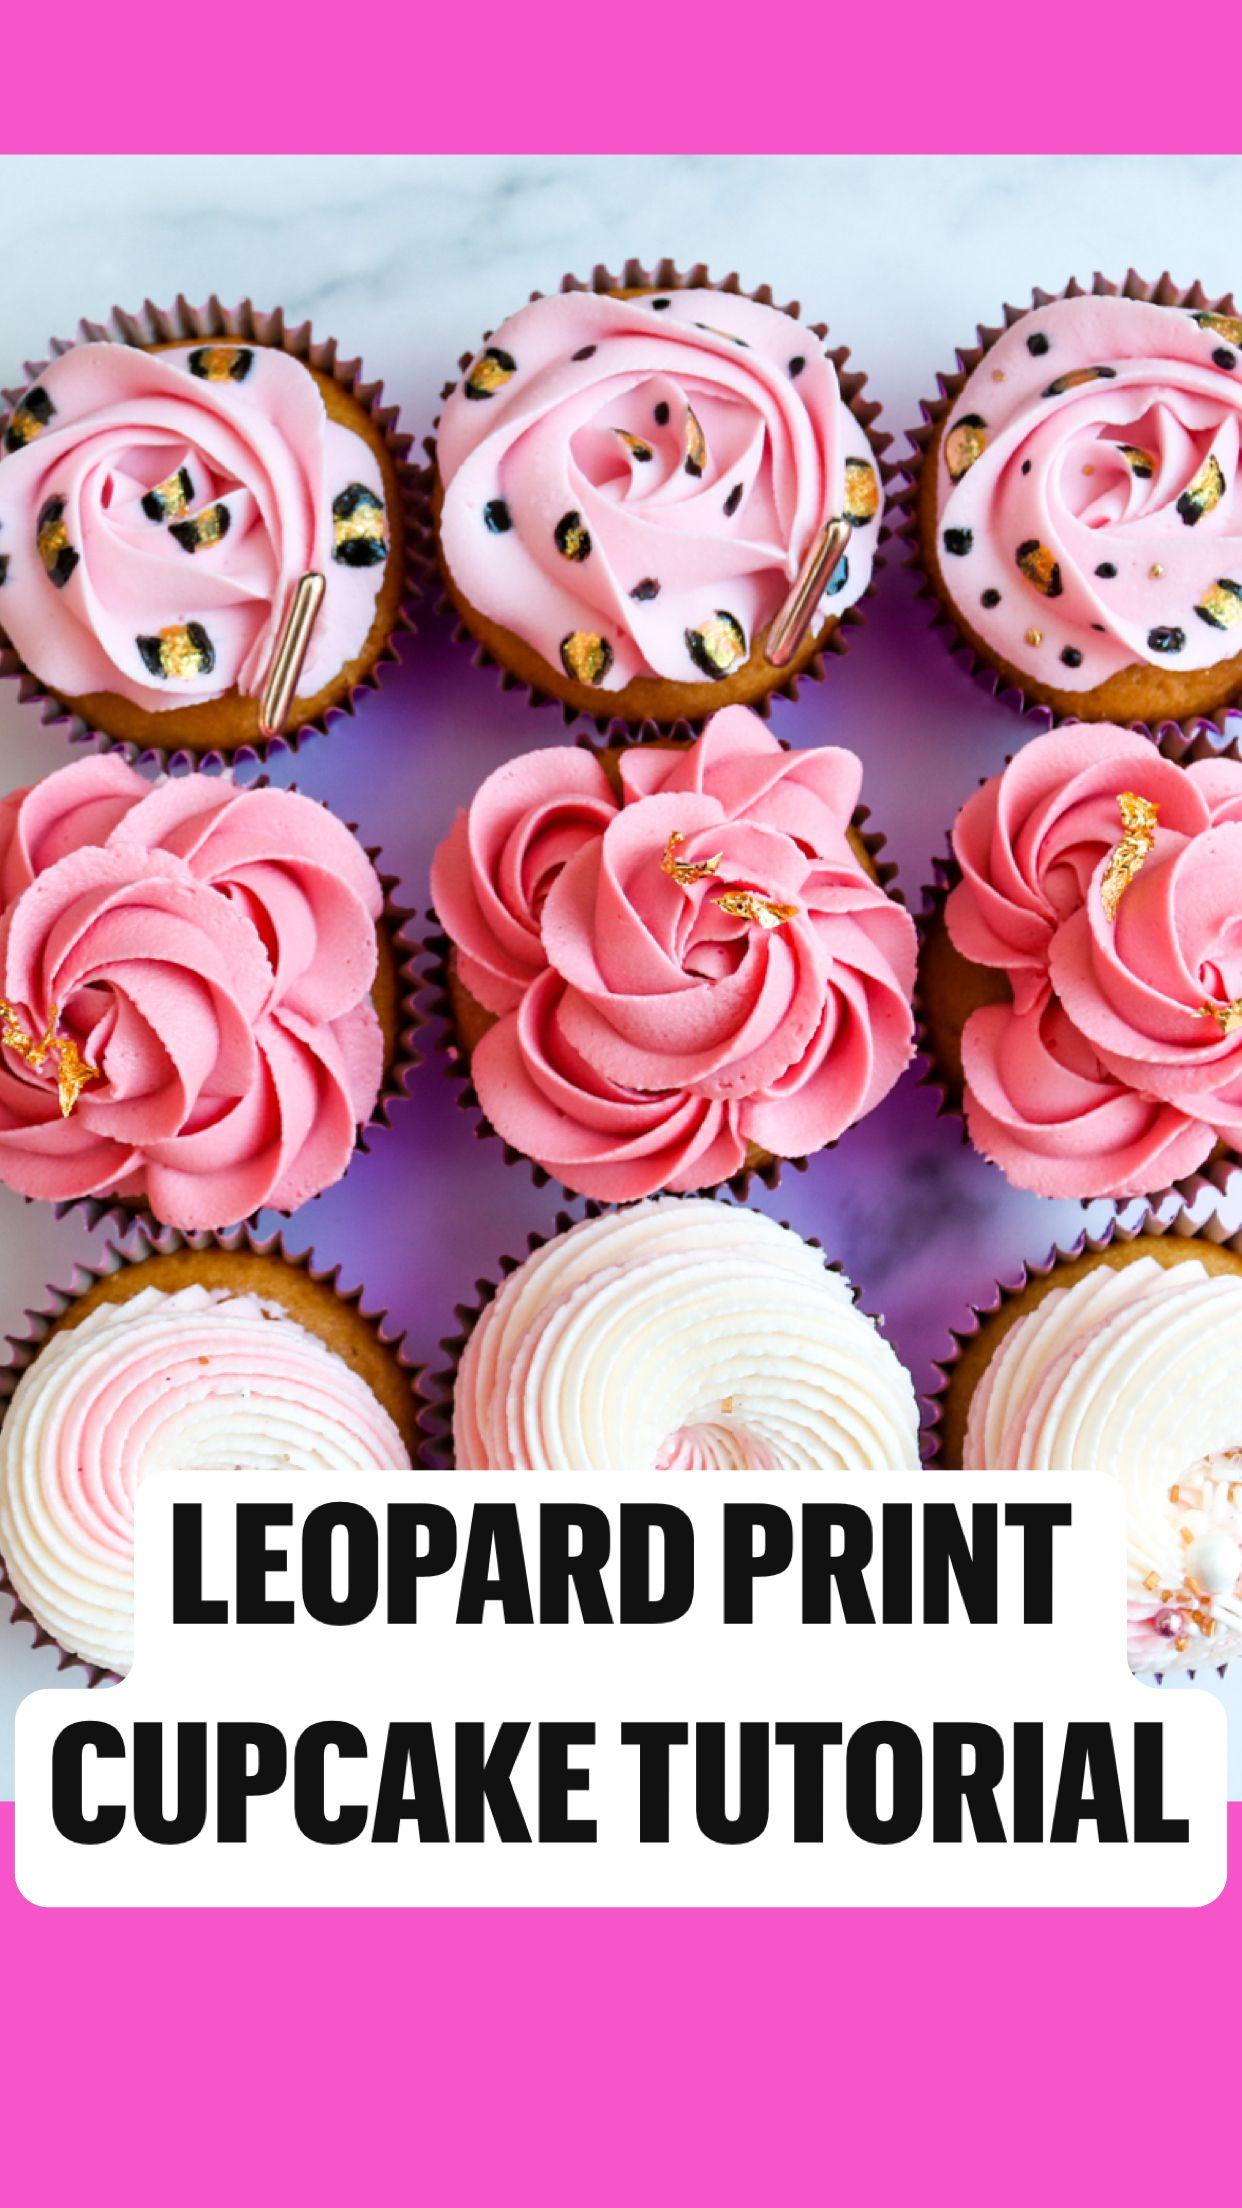 Photo of Leopard print cupcake tutorial